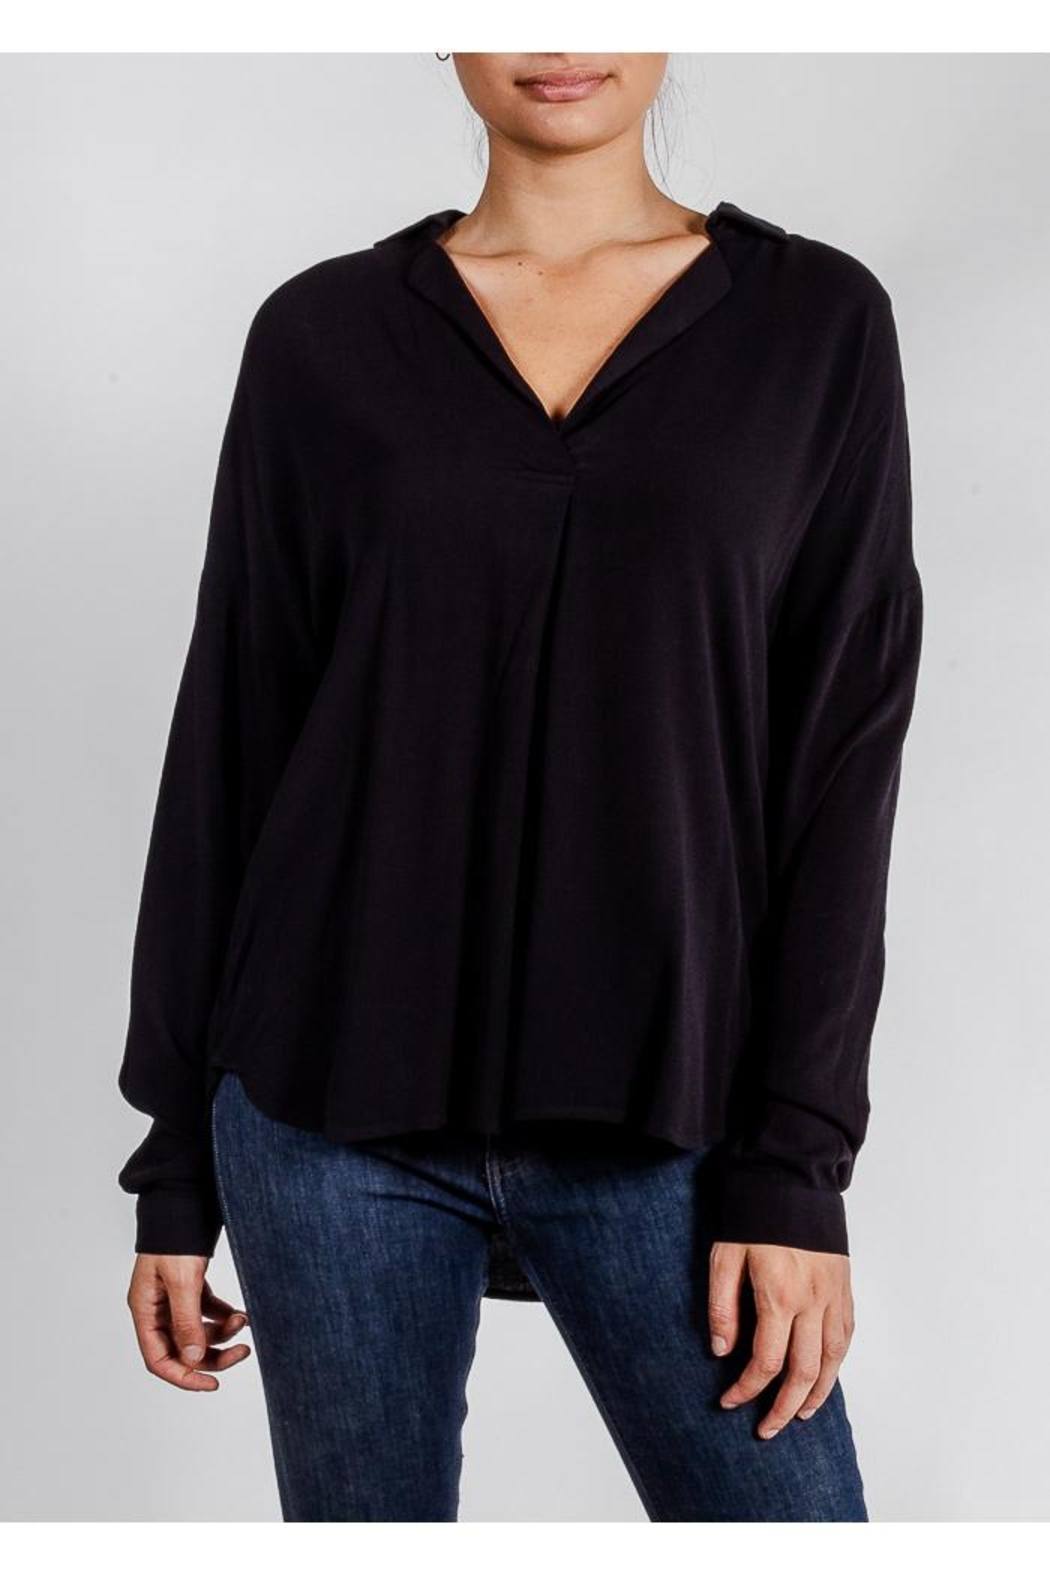 All In Favor Breezy Chic Blouse - Main Image